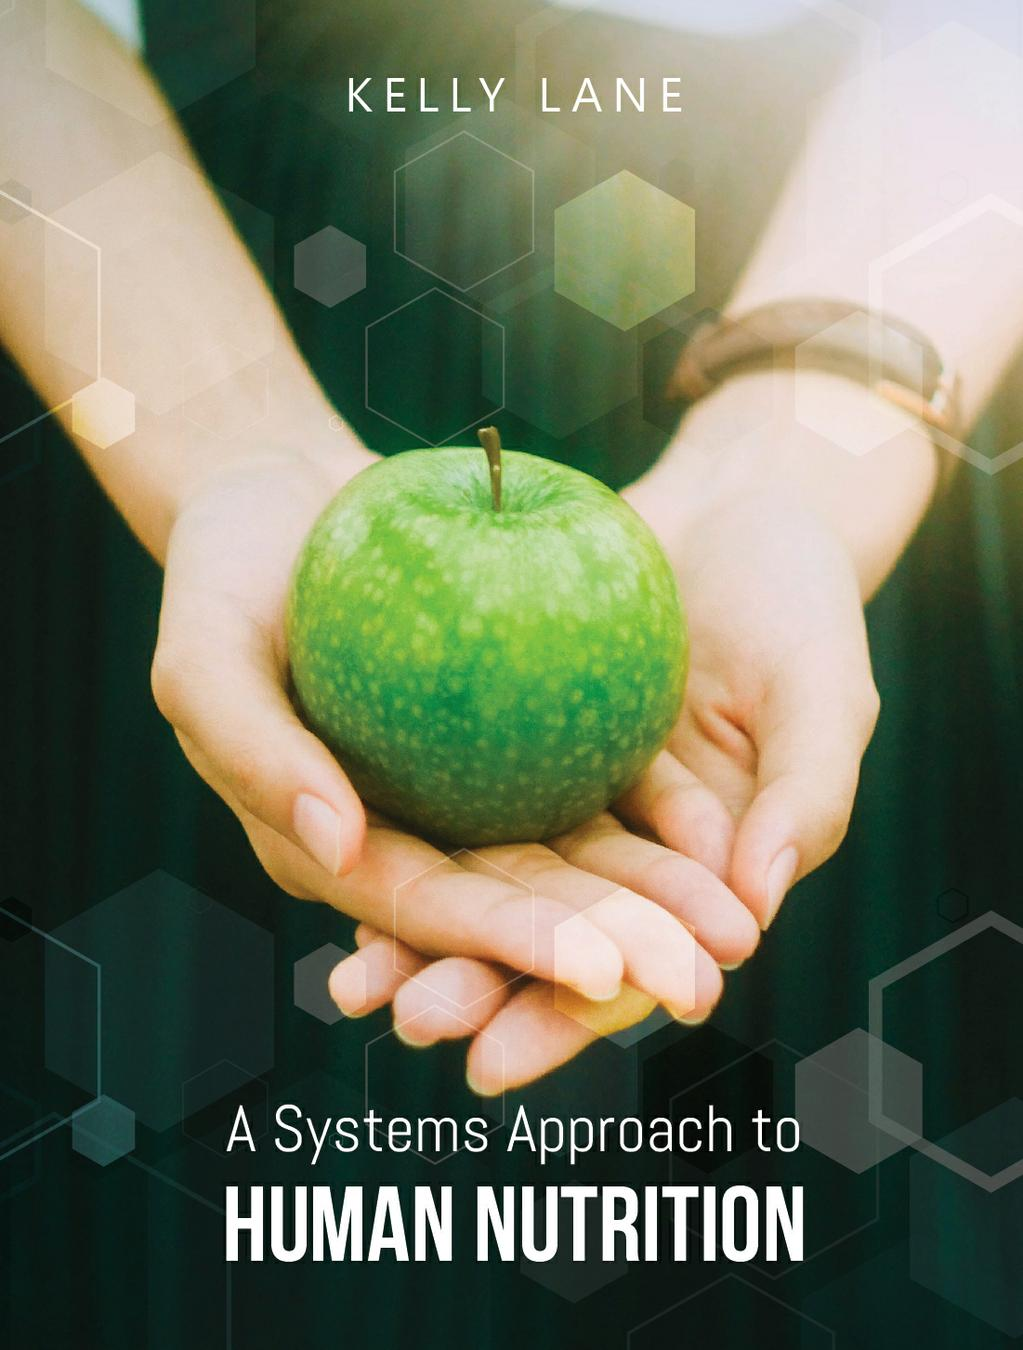 A Systems Approach to Human Nutrition